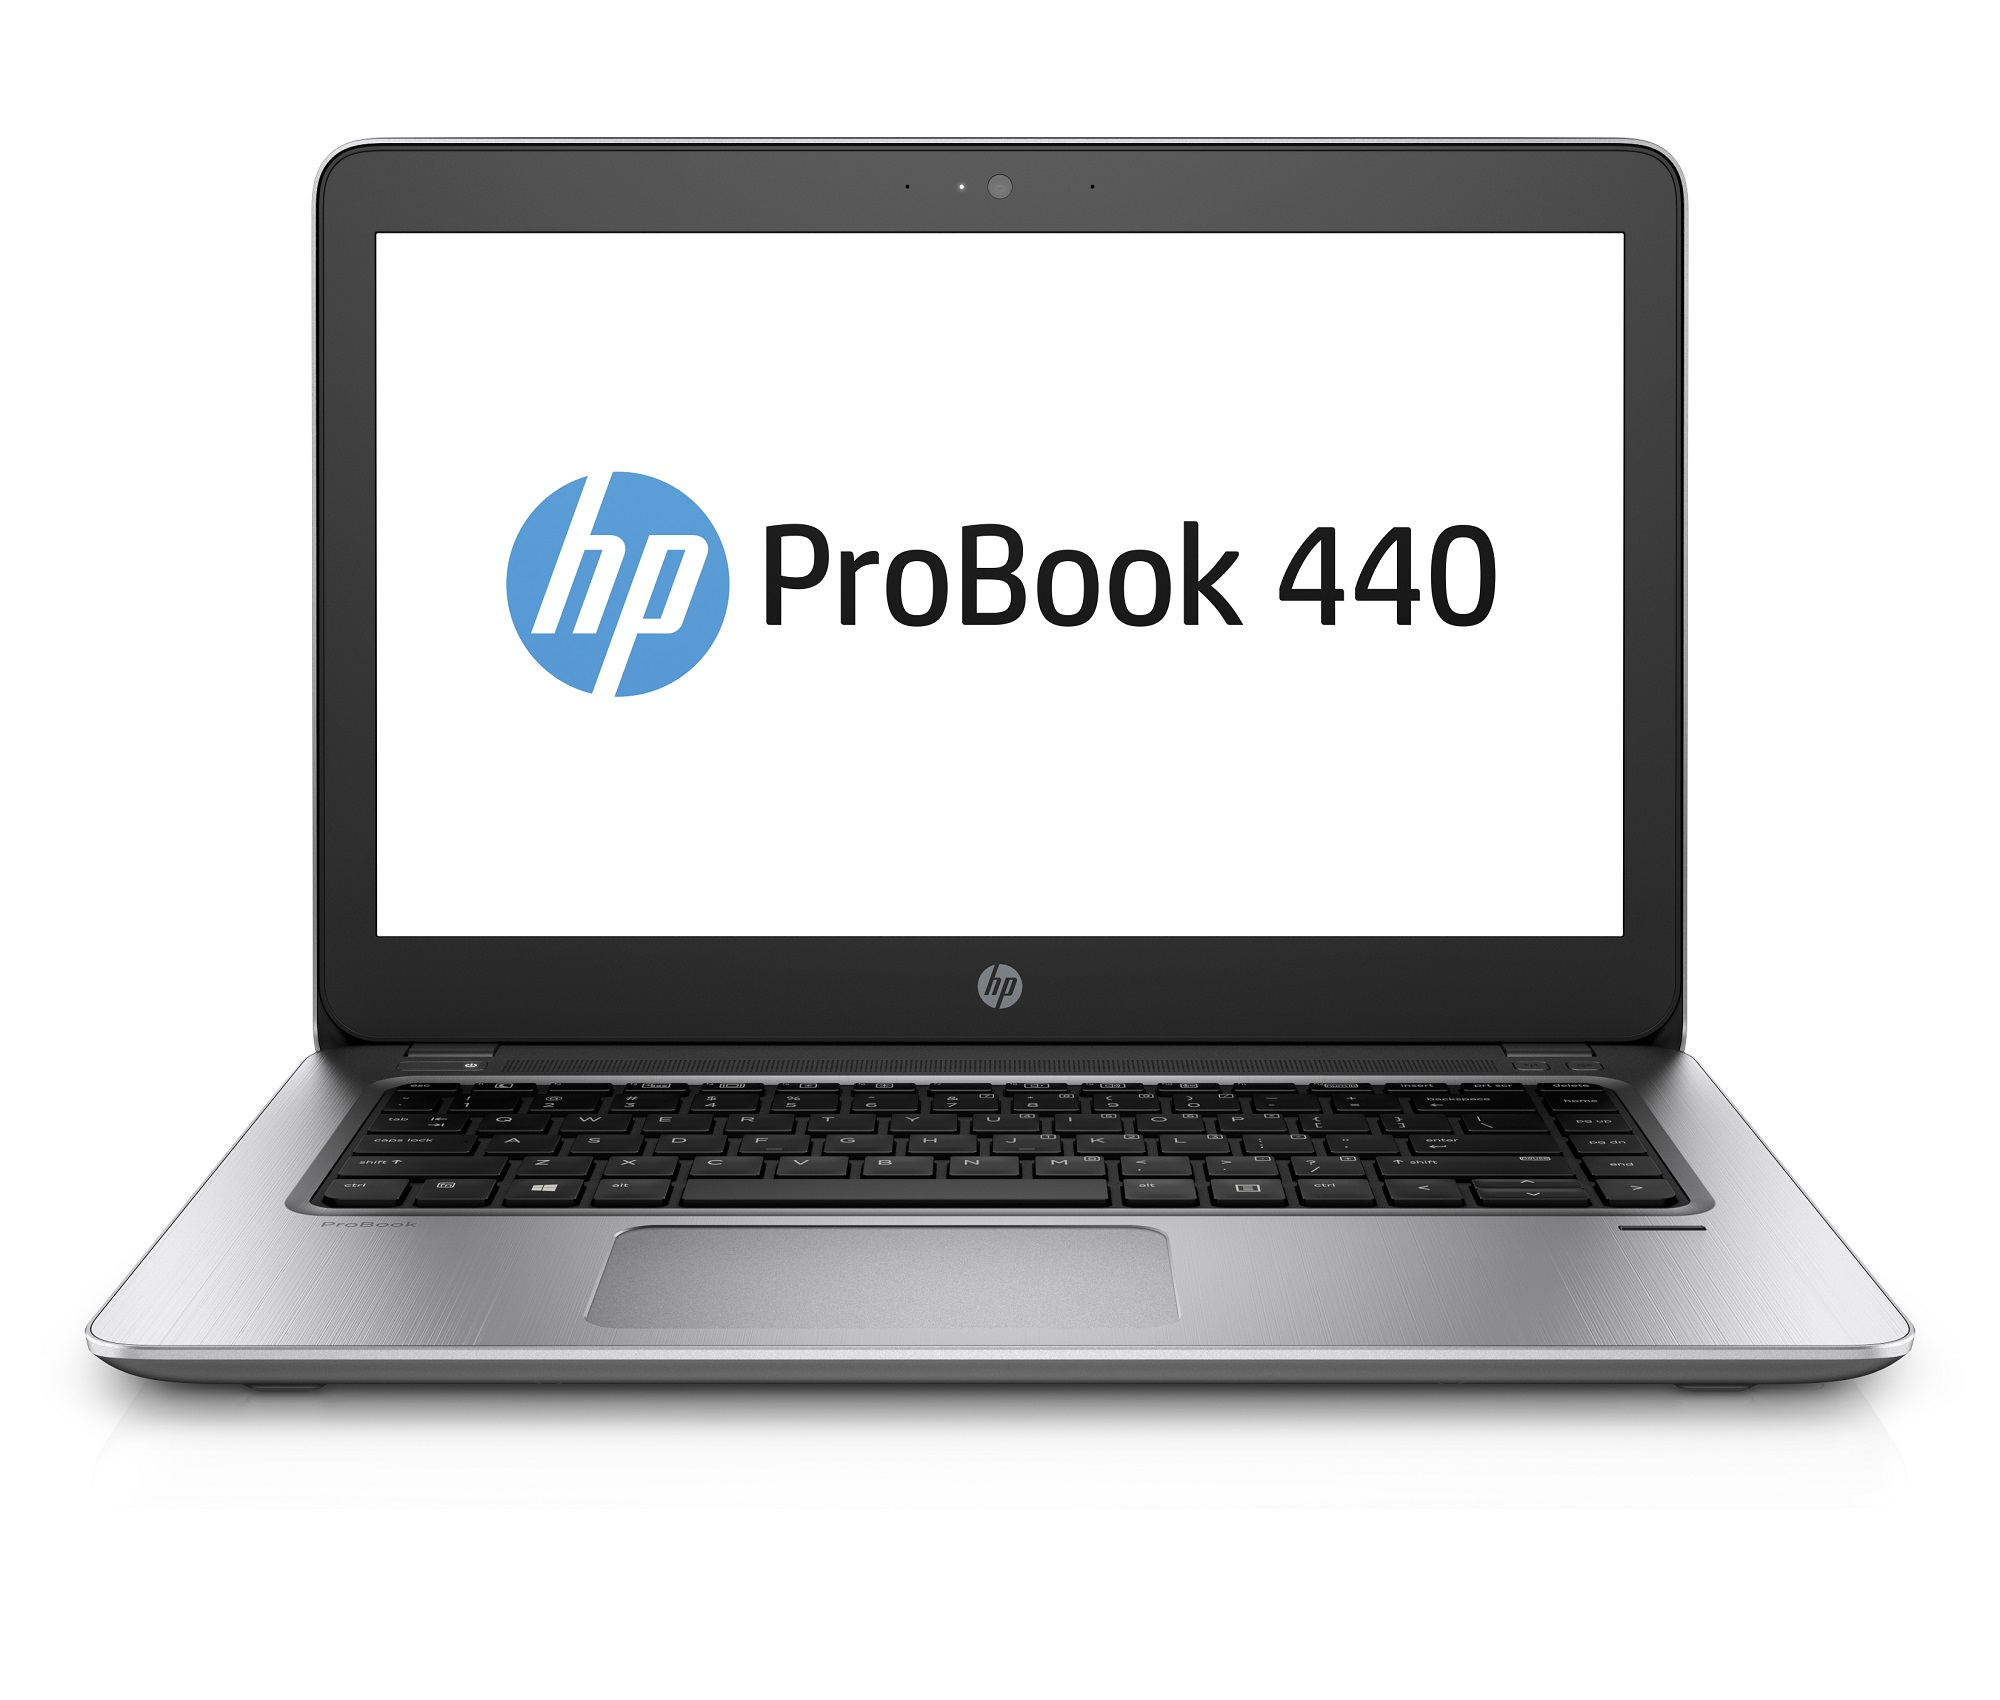 HP ProBook 440 G4 i5-7200U/4GB/256GB SSD+slot 2,5''/14'' FHD/Backlit kbd, Win 10 Pro